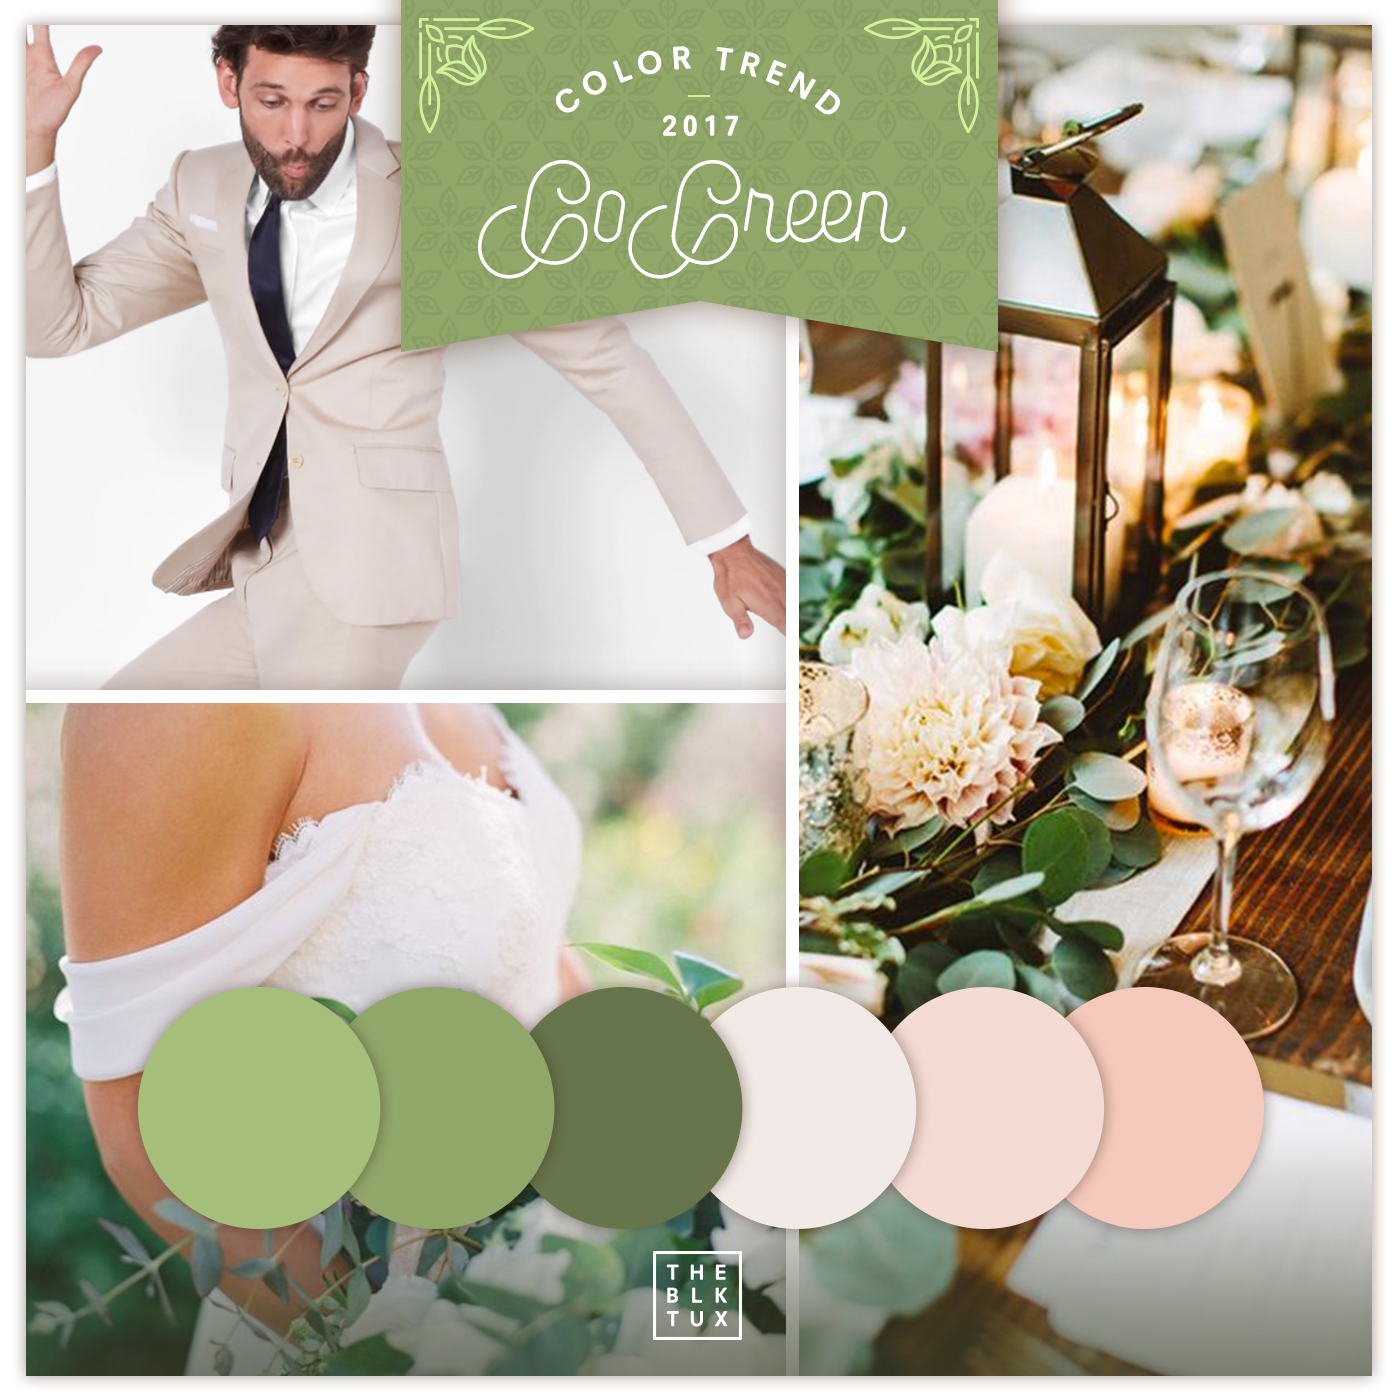 blktux_wedding_color_trends_green_x2_v02